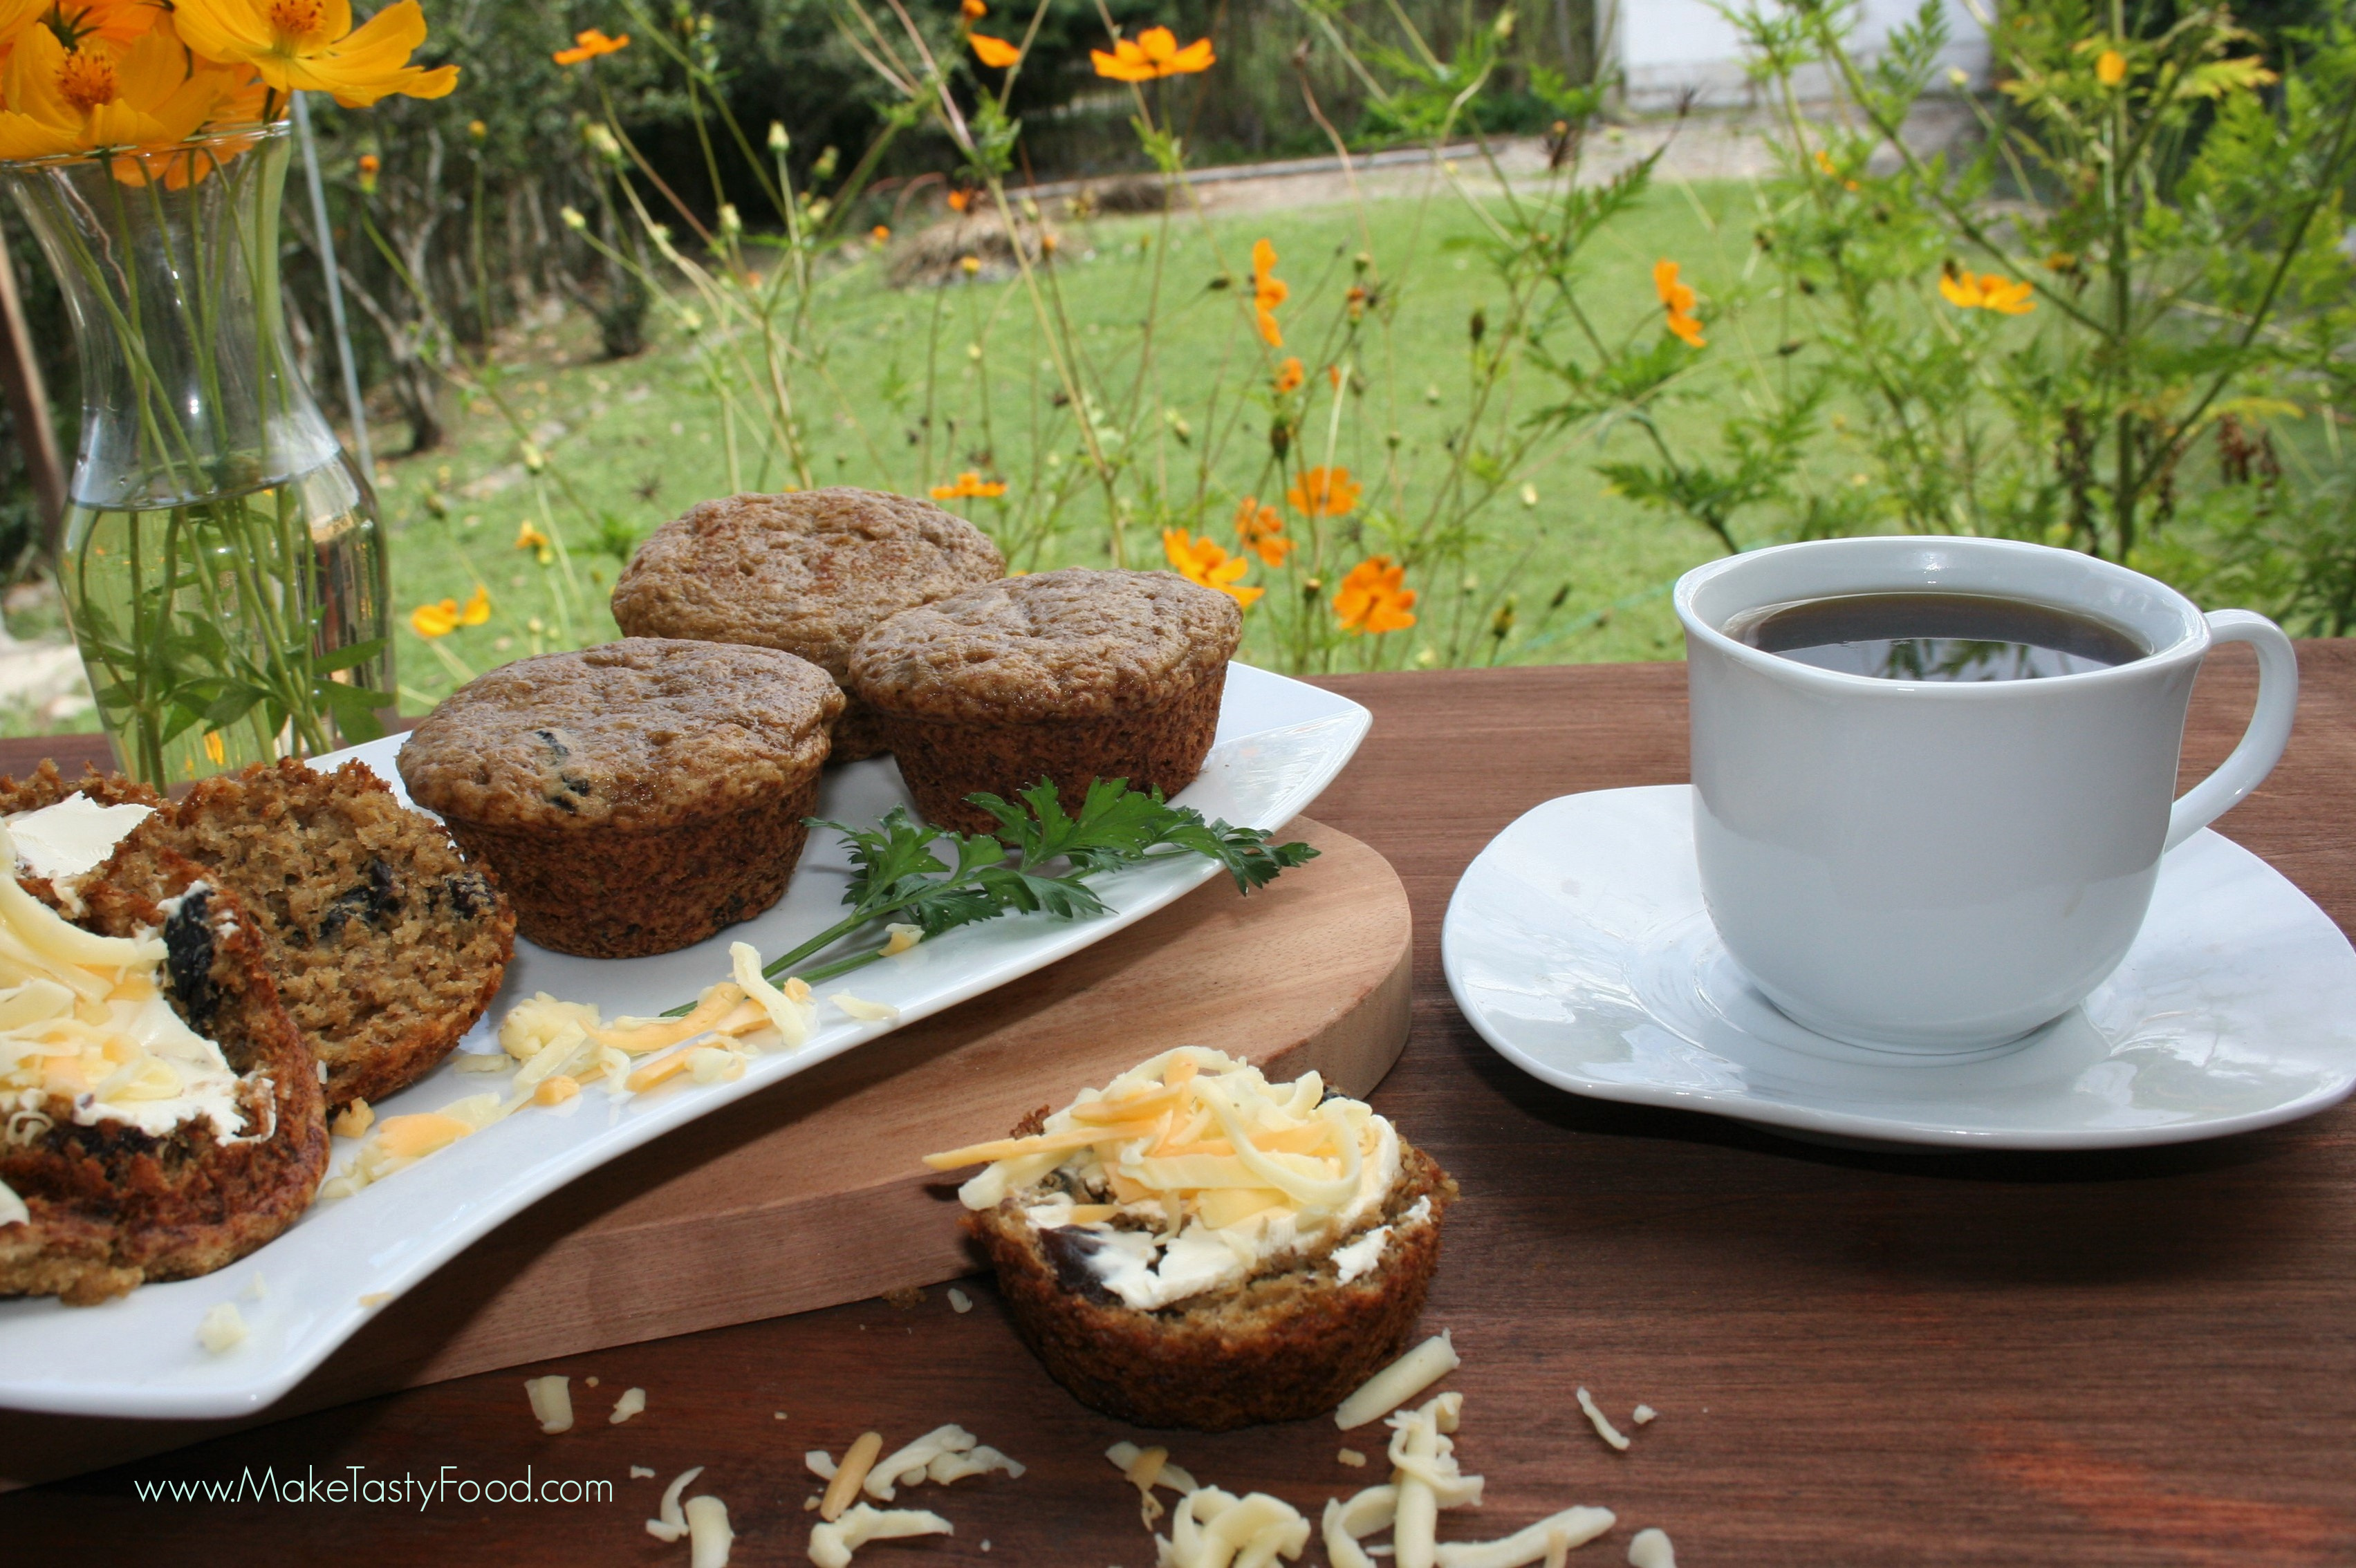 having breakfast on the stoop with coffee and banana muffins with cheese and butter spread on top